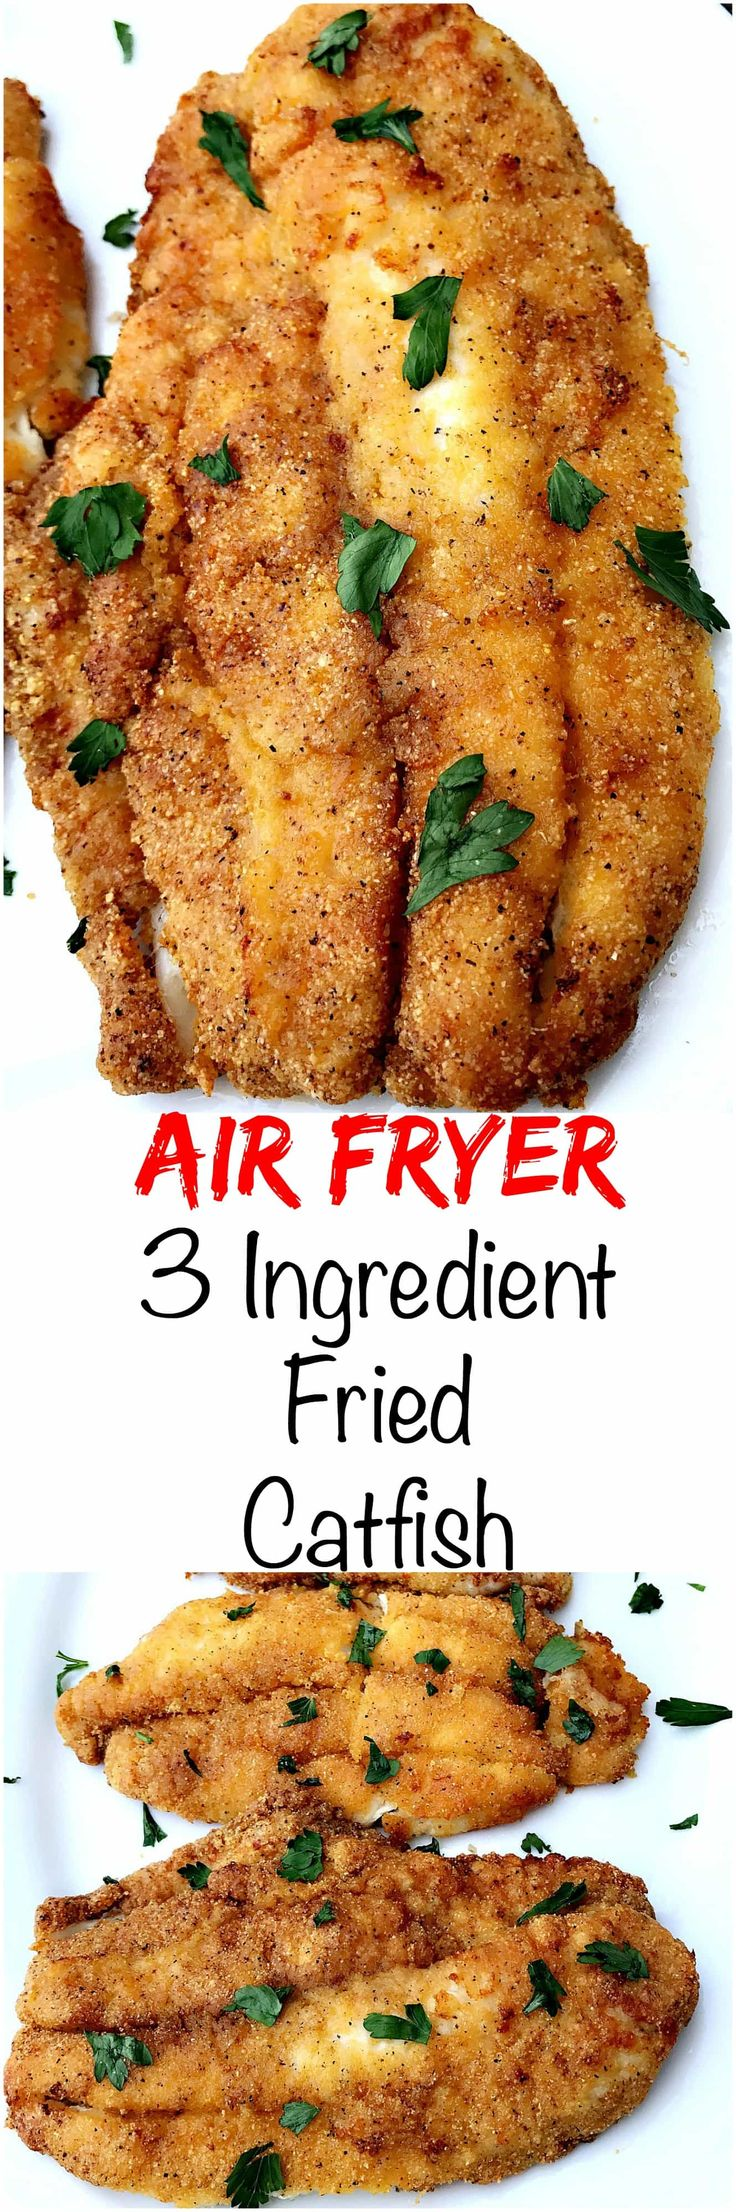 Air Fryer 3 Ingredient Fried Catfish is a quick and easy low-calorie, low-fat and low-carb recipe. This recipe is crispy and crunchy!